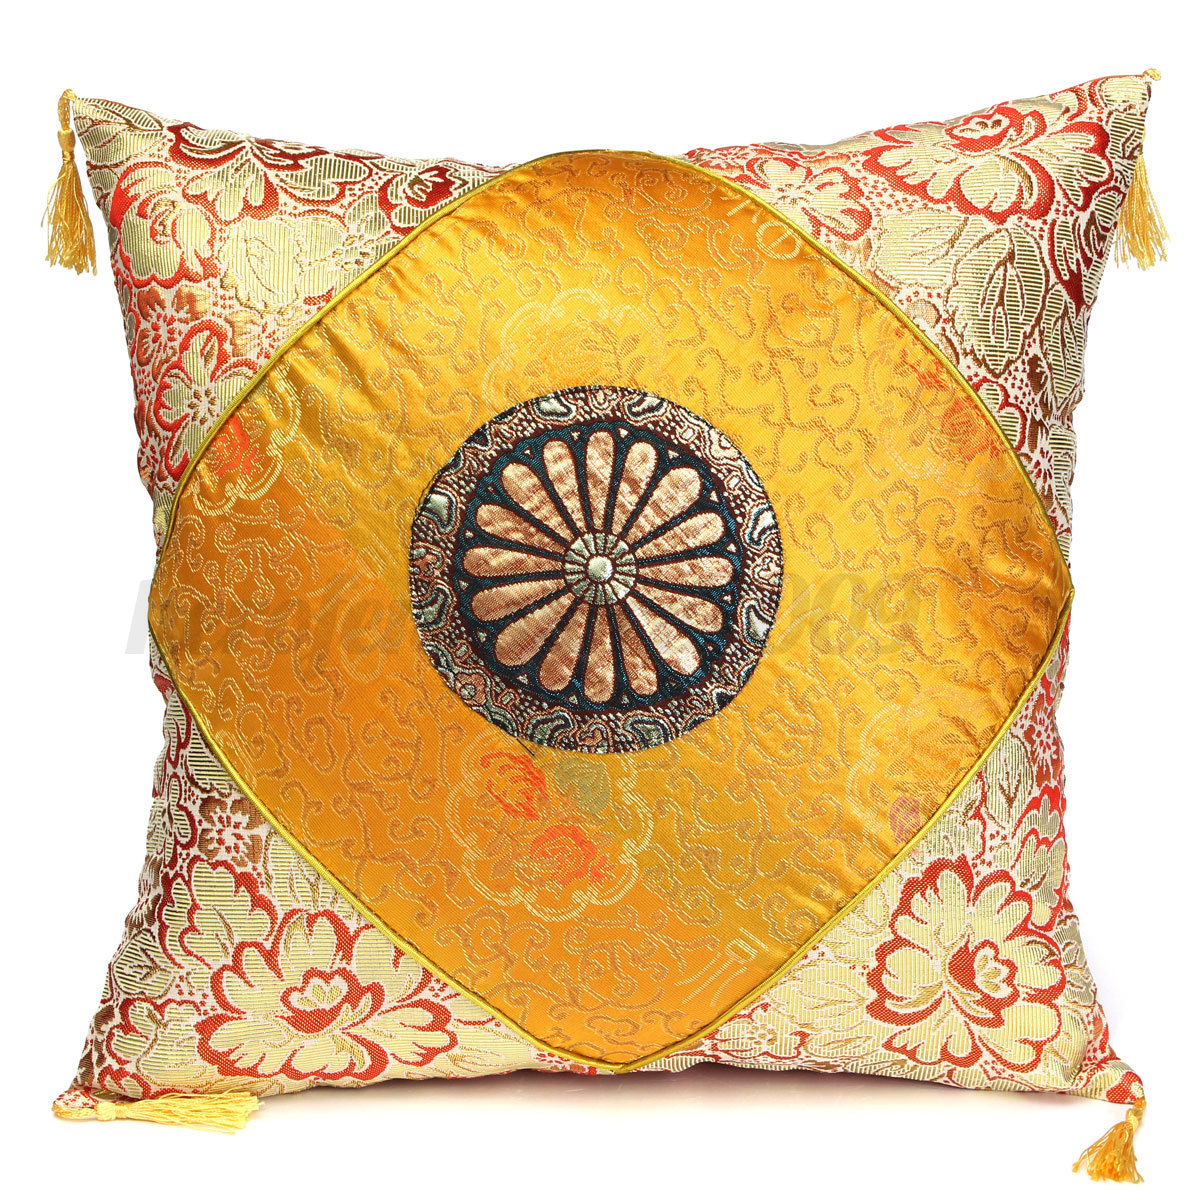 Decorative Pillows With Tassels : Vintage Flower Tassels Cotton Pillow Case Sofa Throw Cushion Cover Home Decor eBay